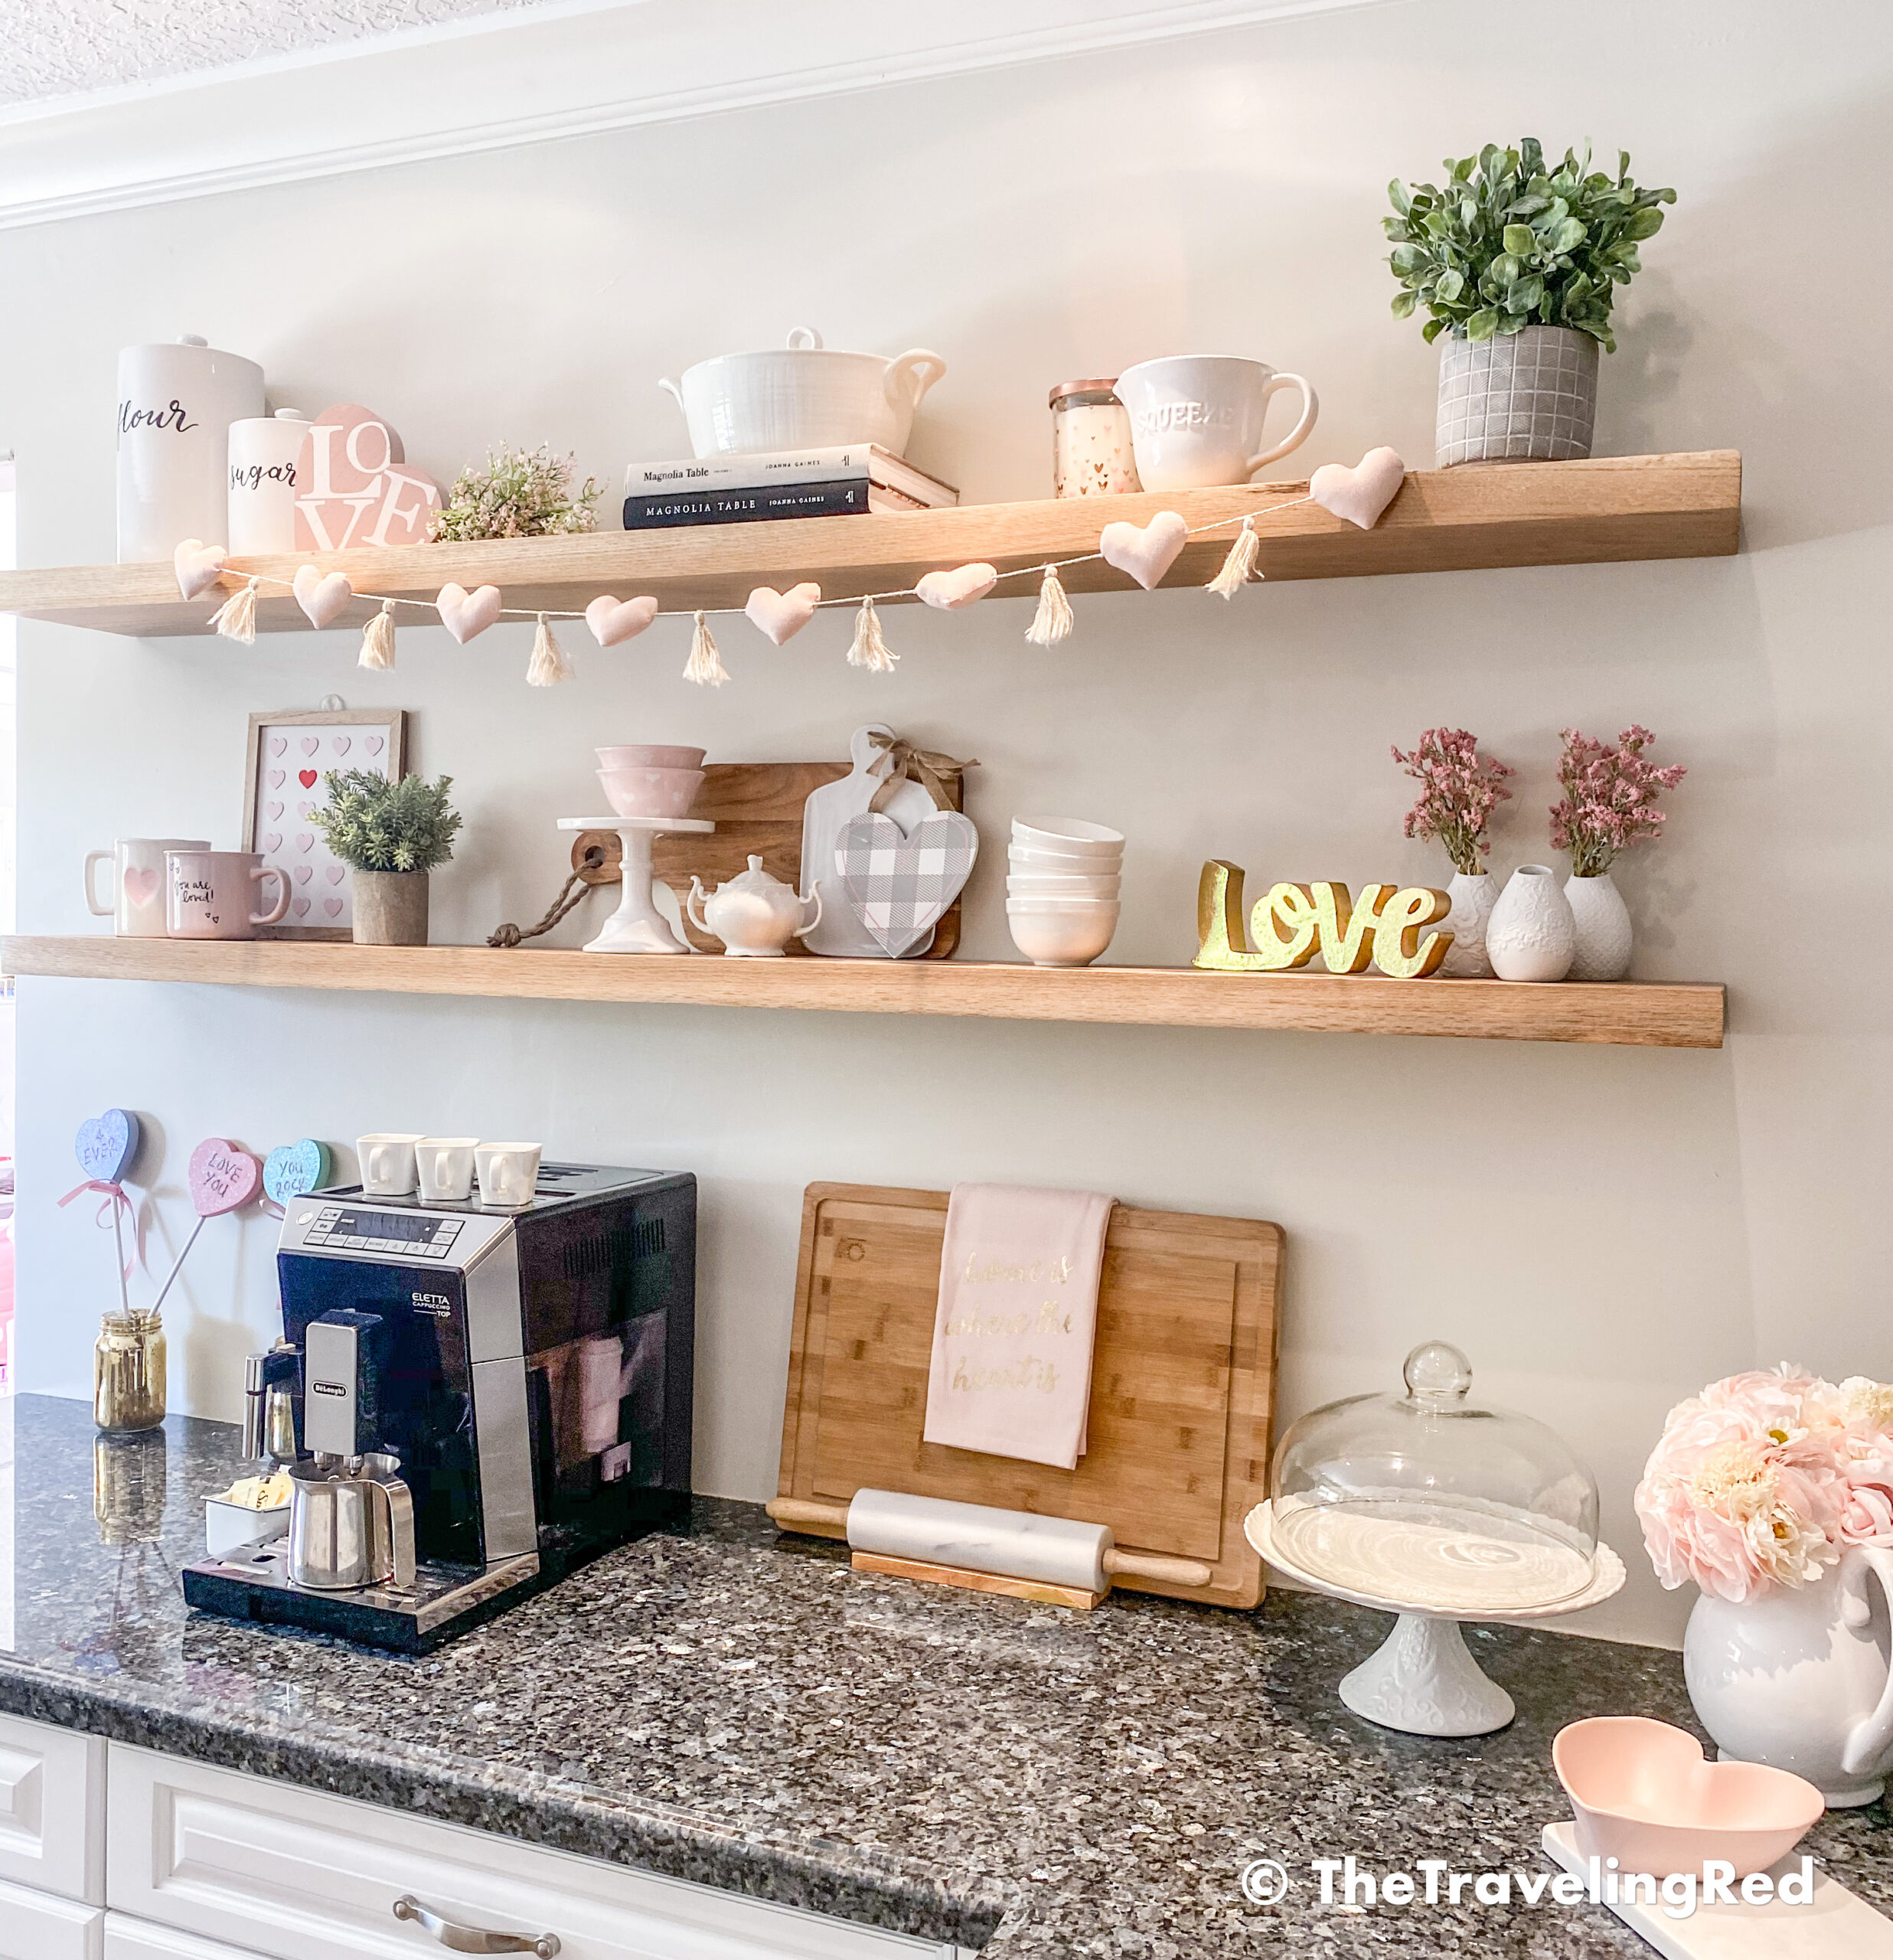 Valentine's Day Home Decor - Kitchen Shelves styling using soft pinks, garlands, artificial flowers, wood signs and some fun kitchen pieces - #valentinesday #valentinesdaydecor #homedecor #kitchenshelves #valentinesdayhomedecor